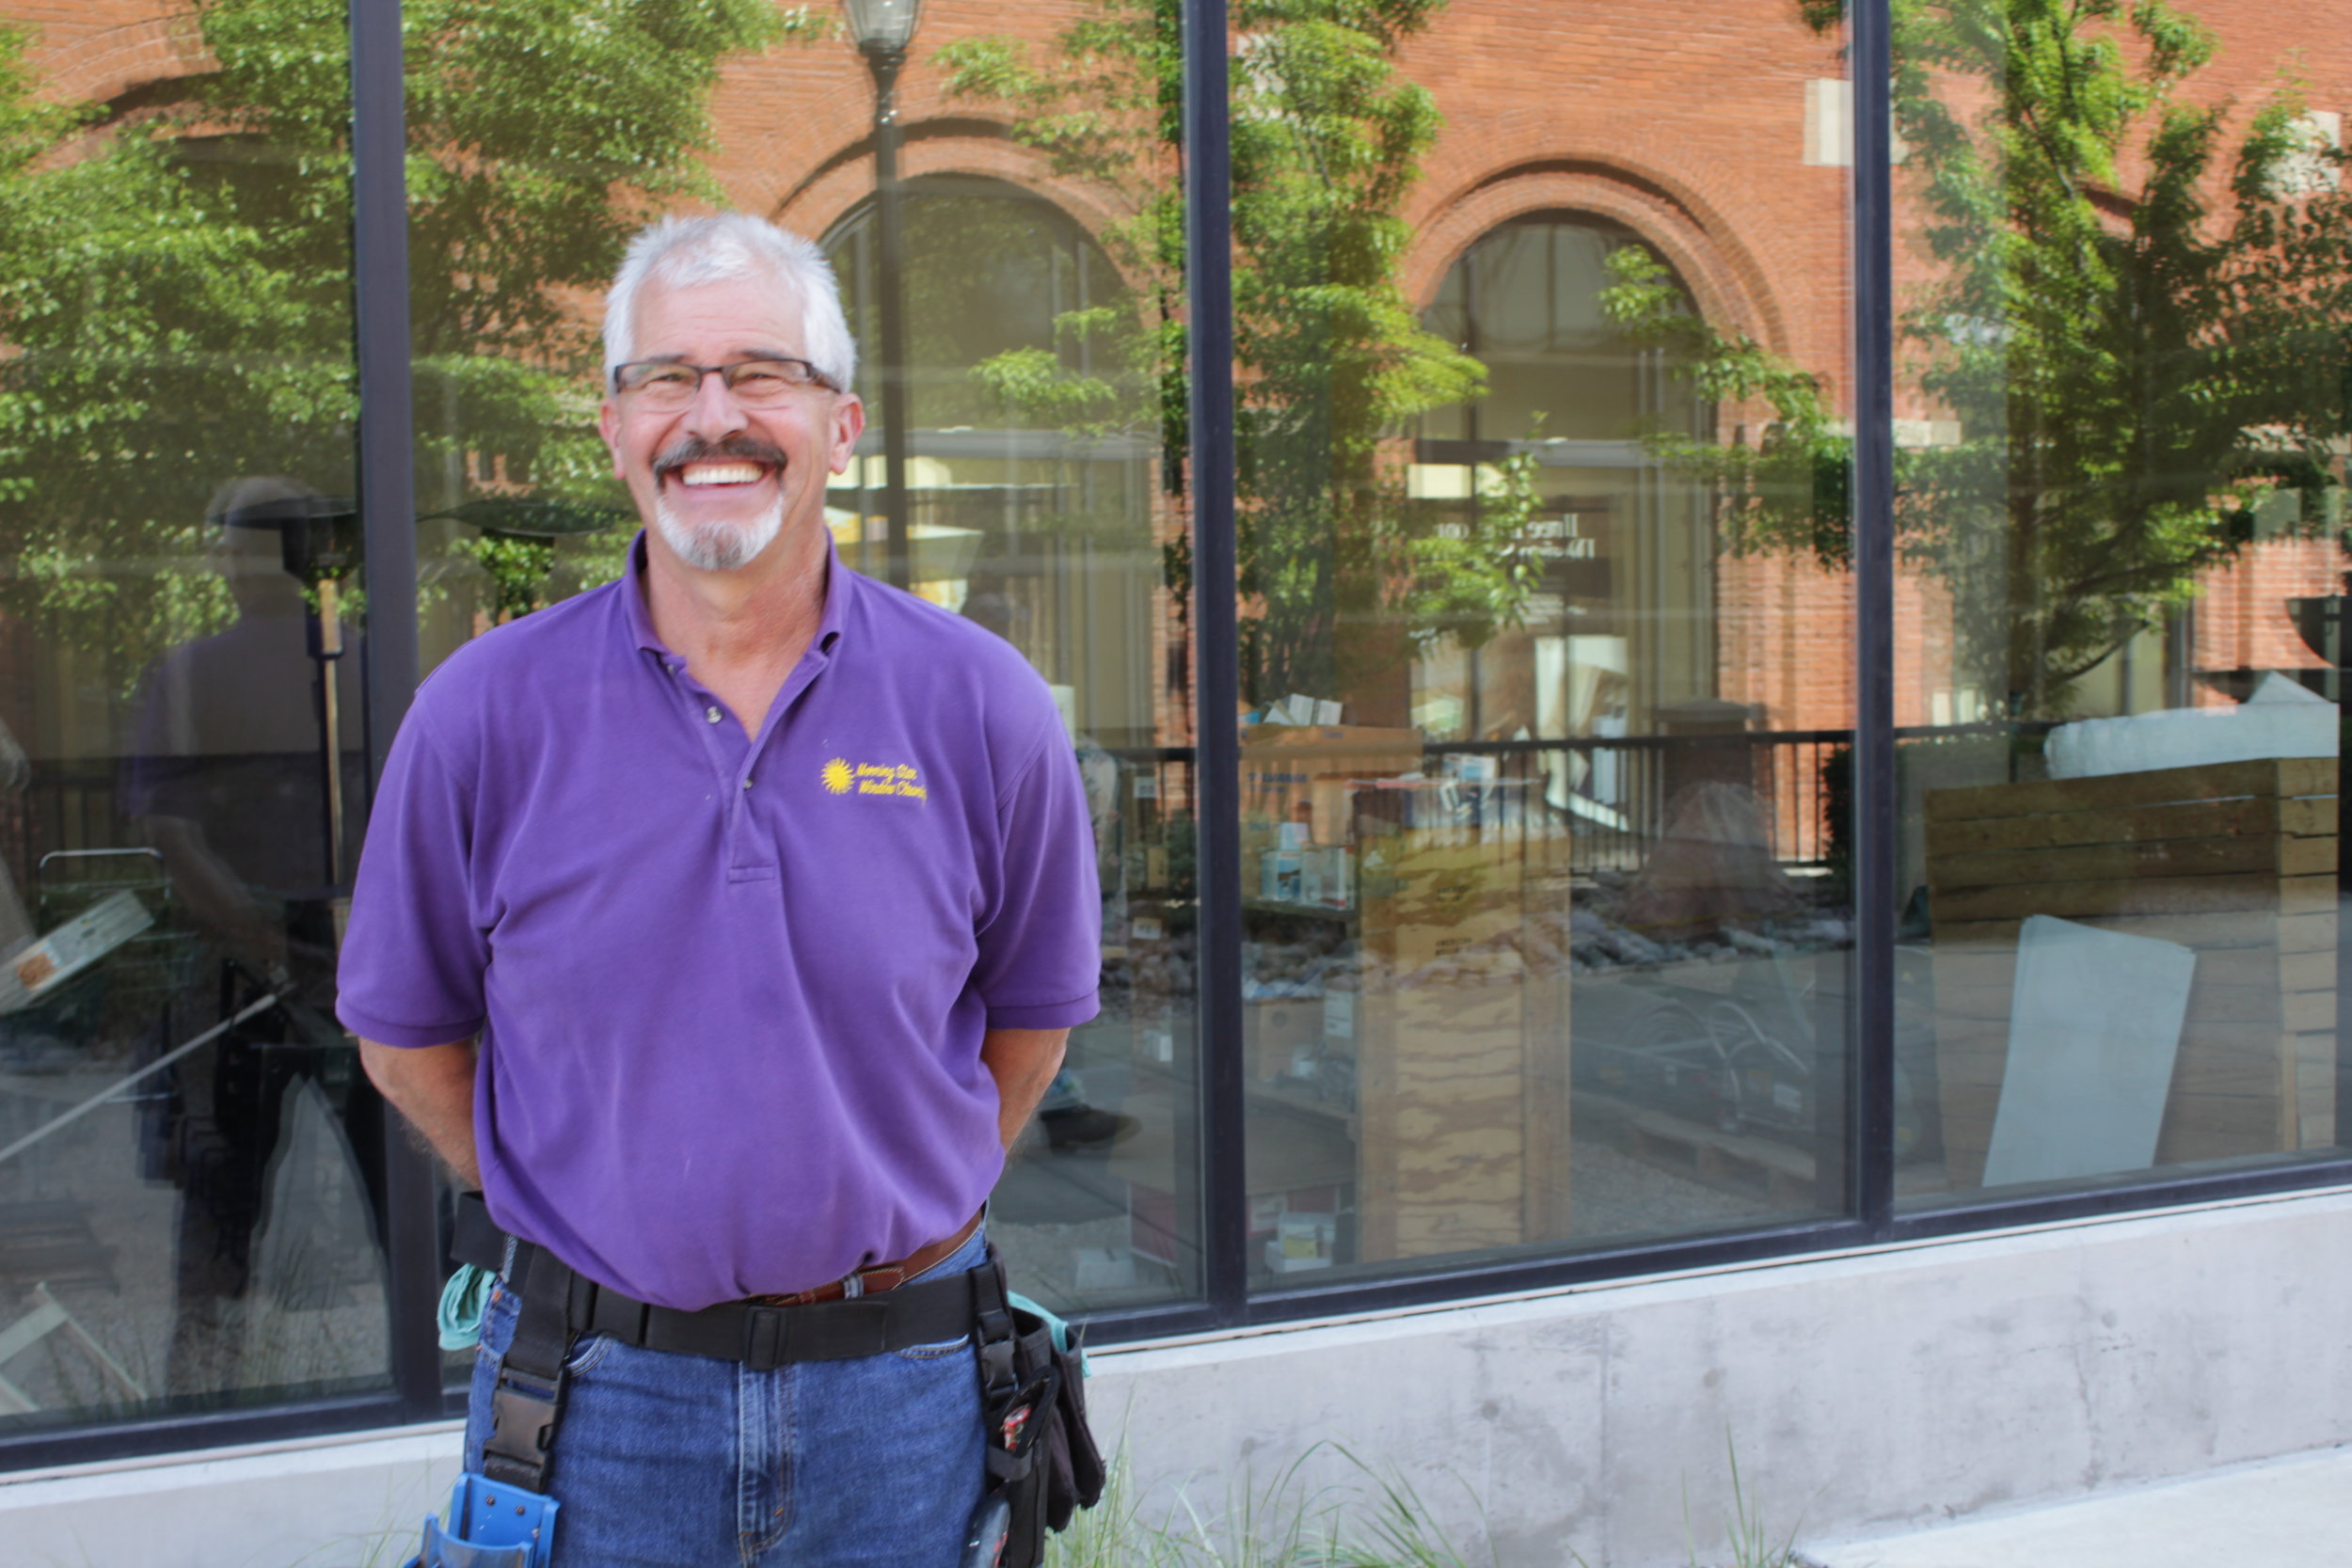 Roy Smith, Owner and Founder of Morning Star Window Cleaning